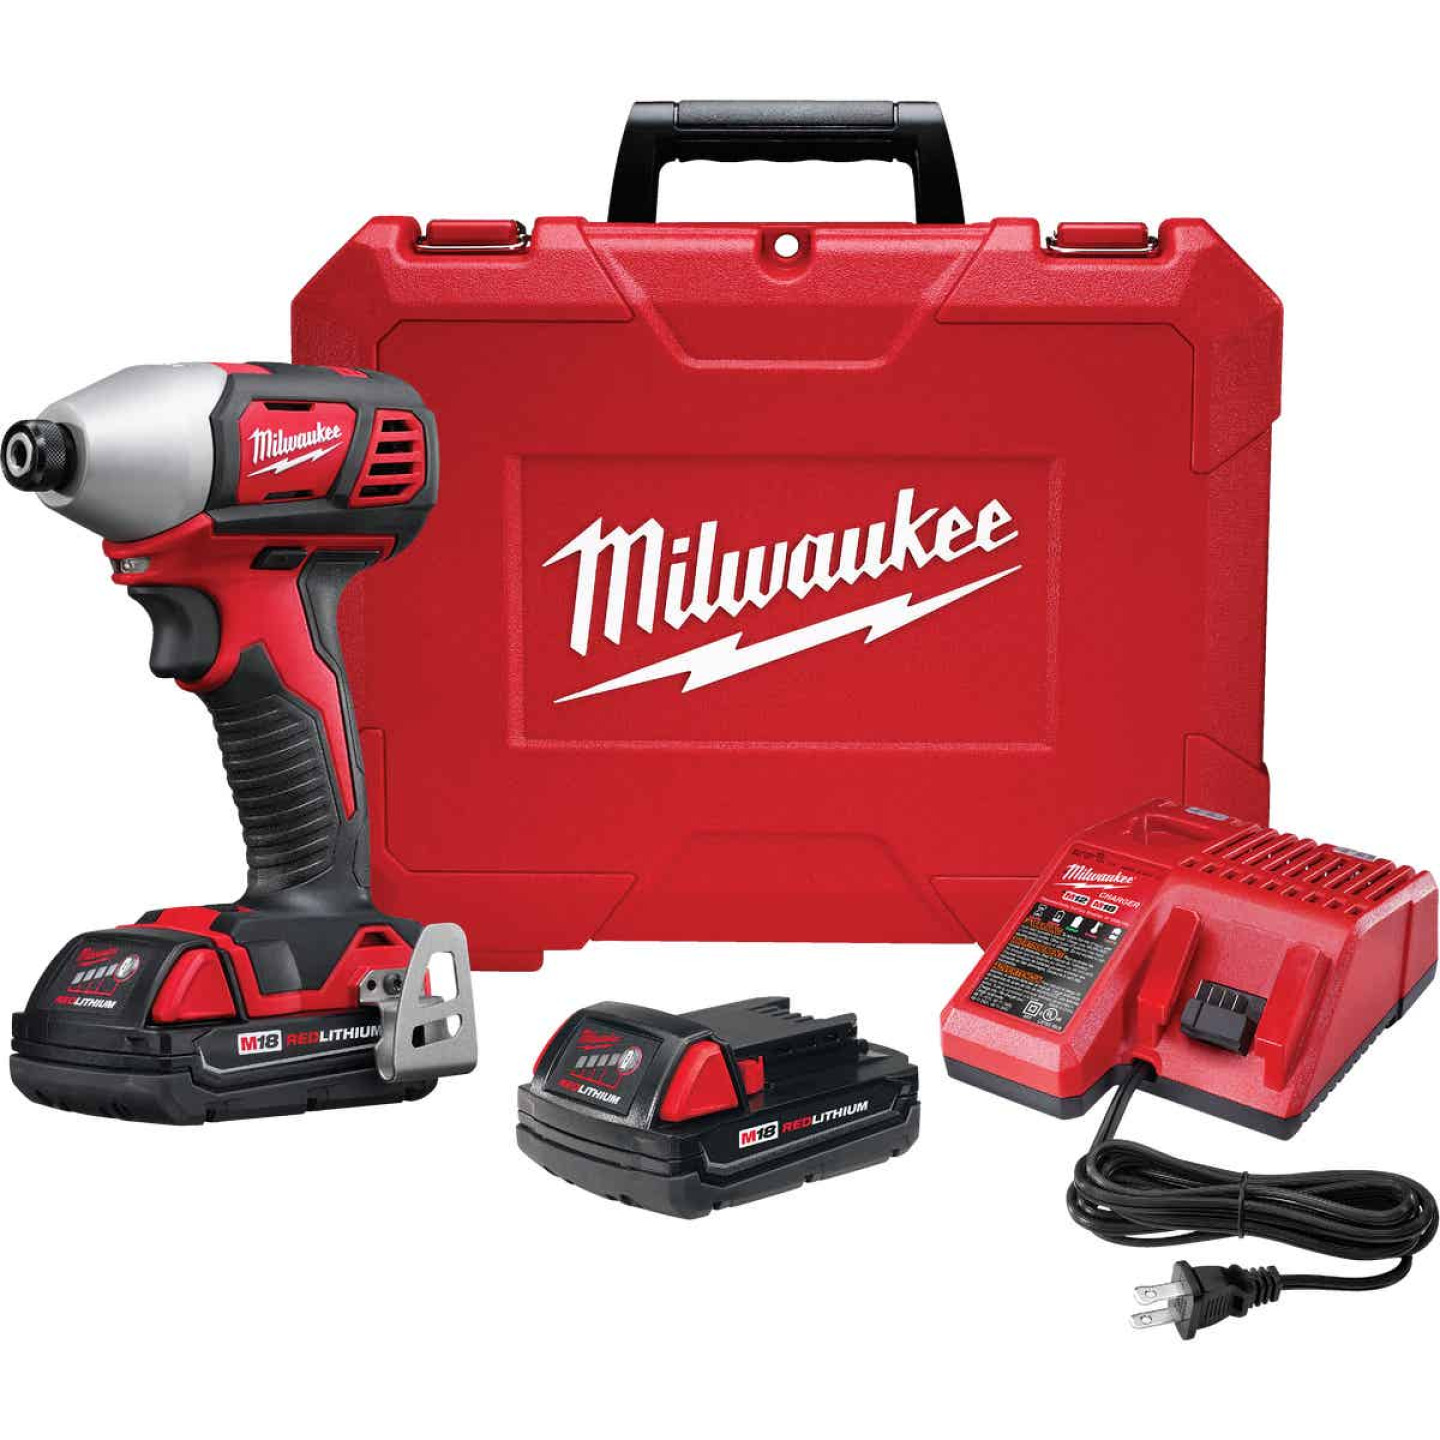 Milwaukee M18 18 Volt Lithium-Ion 2-Speed 1/4 In. Hex Cordless Impact Driver Kit (with 2 Compact Batteries) Image 5